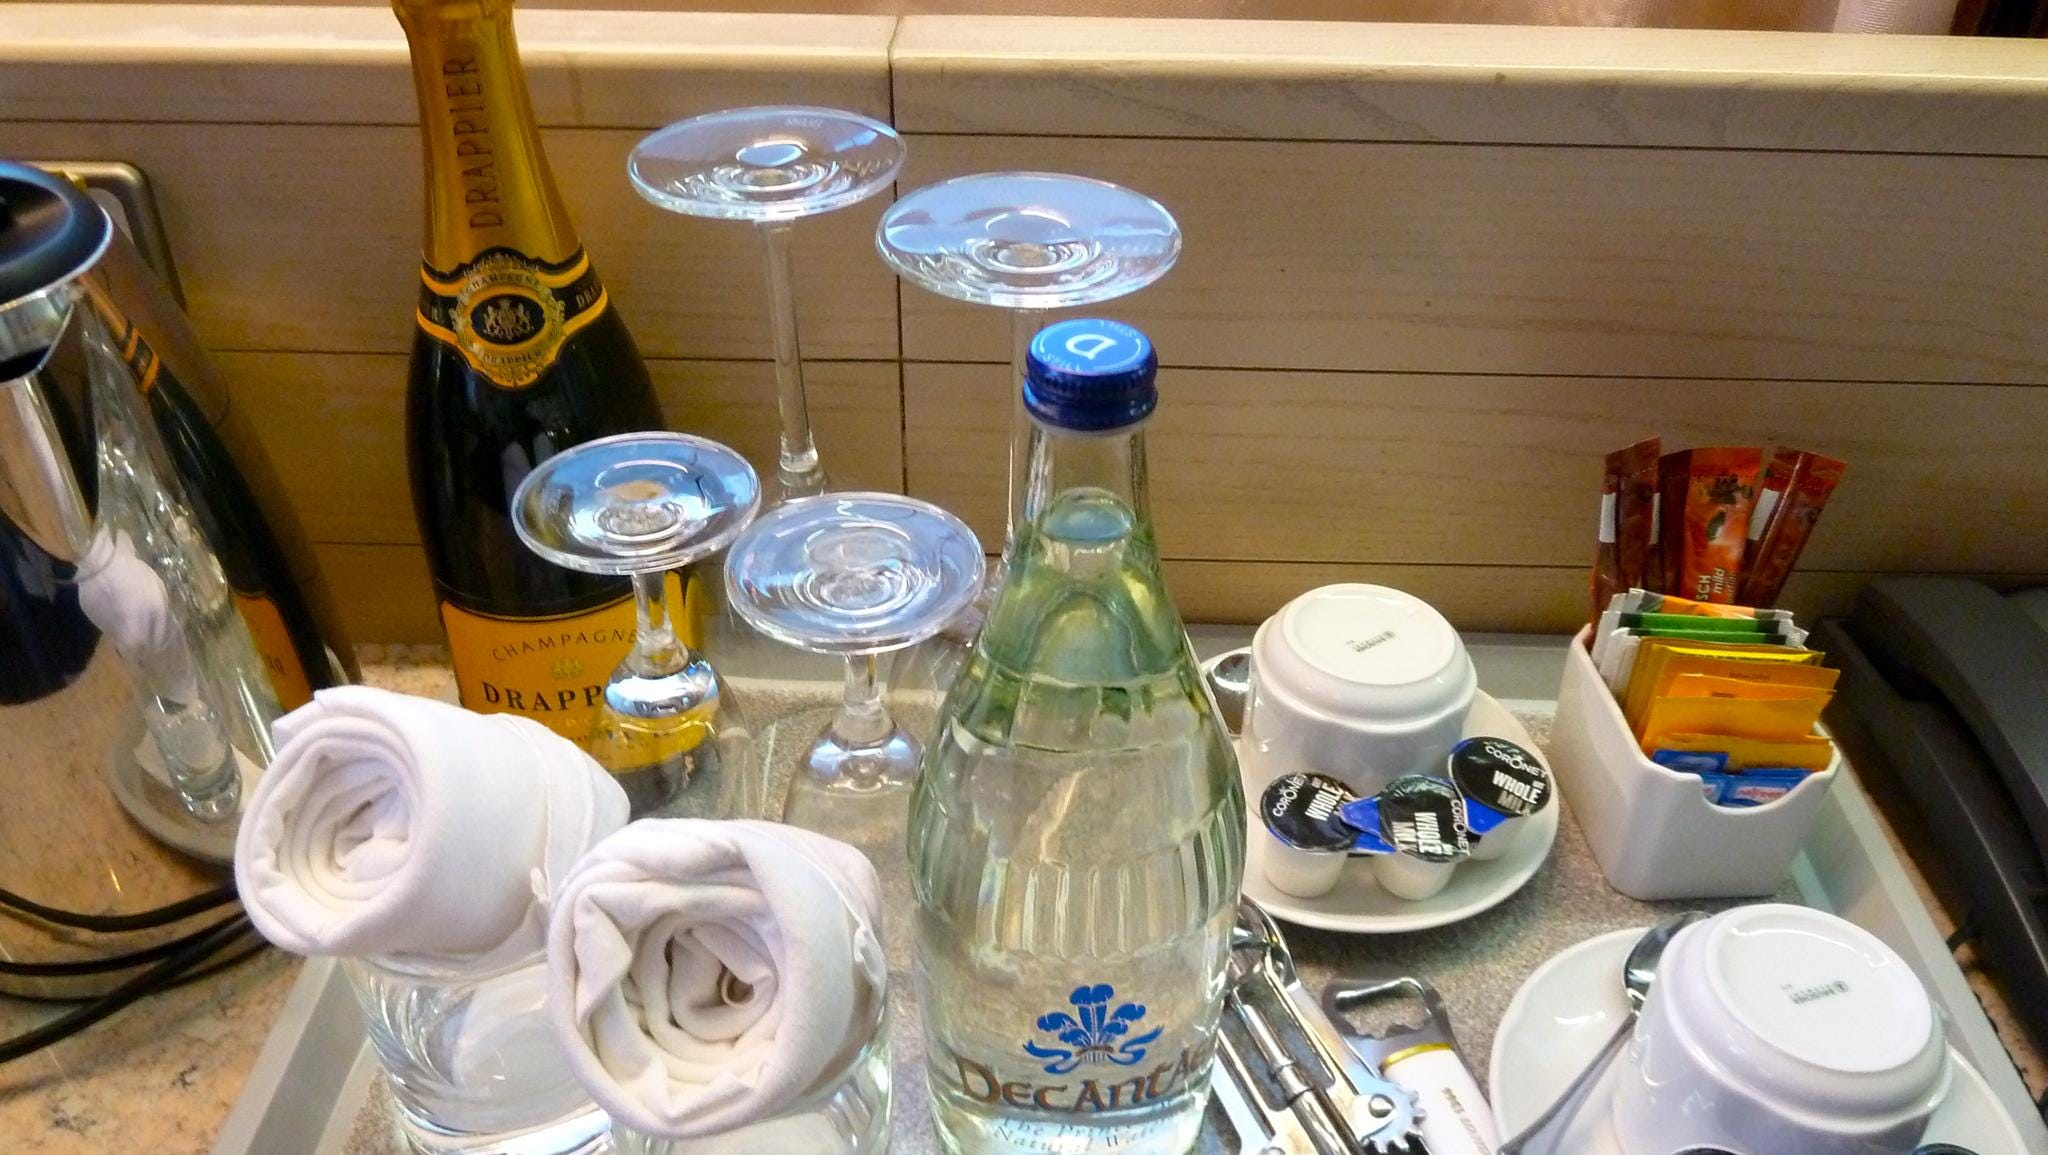 Suites are stocked with a welcome bottle of champagne, bottled water and a coffee/tea maker.